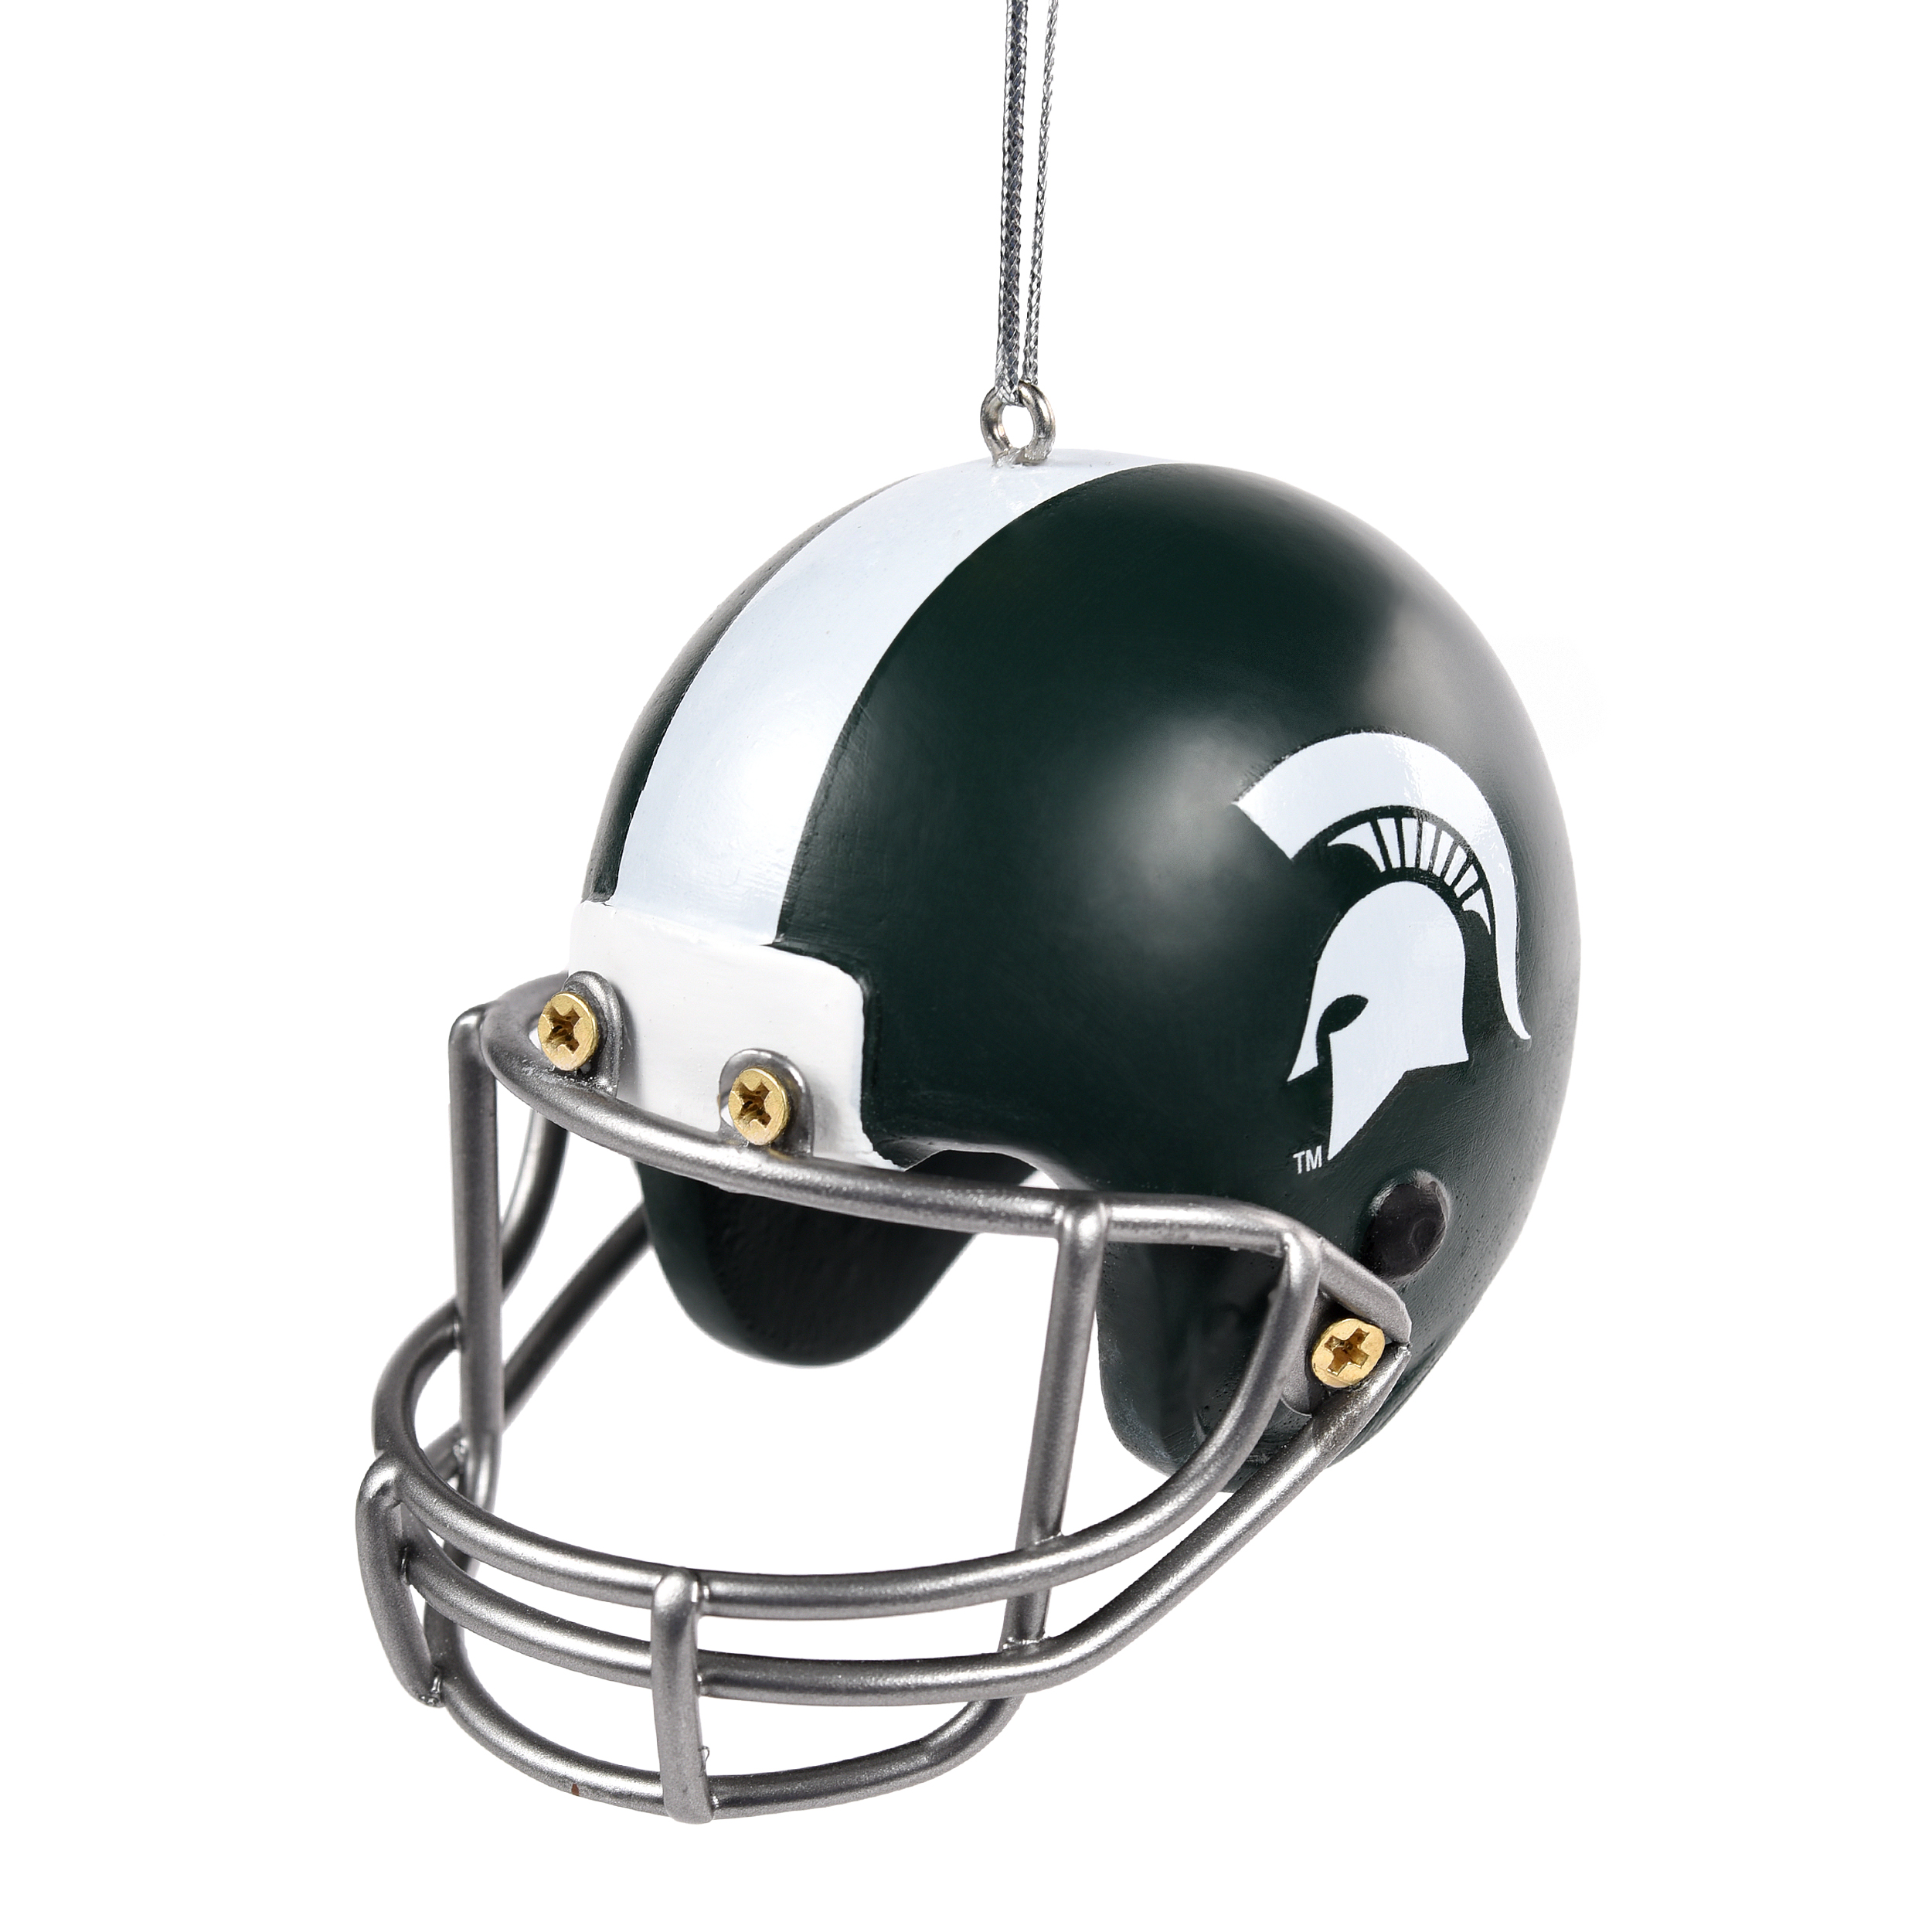 Michigan State Spartans Official NCAA Holiday Christmas Ornament Resin Helmet by Forever Collectibles 497639